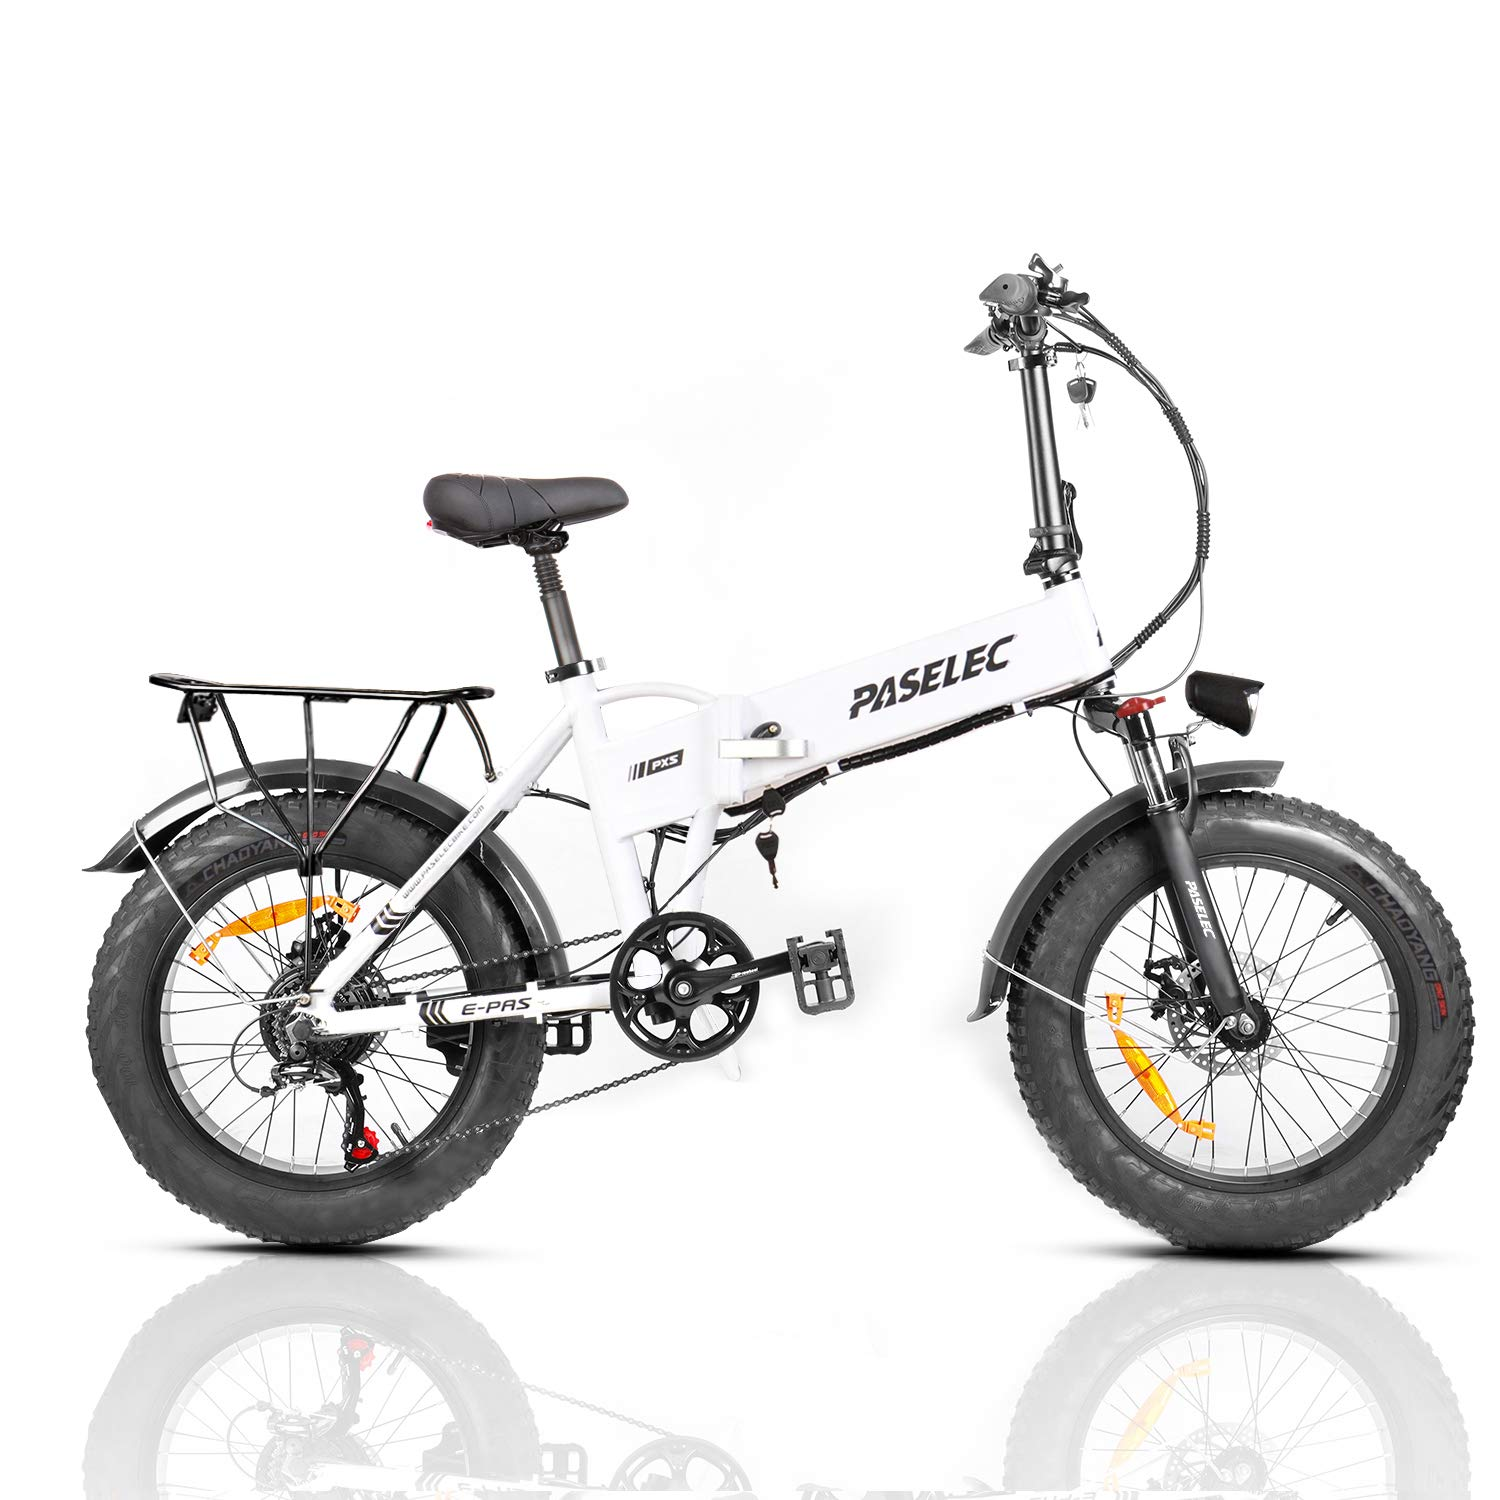 PASELEC Electric Bikes for Adults Folding Electric Bicycle, Mountain Ebike with 500w Motor, 4.0 Fat Tire Ebike, 10.4Ah Removable Battery, Shock Absorption, 7-Speed Gears, Dule Disc Brakes Cycle